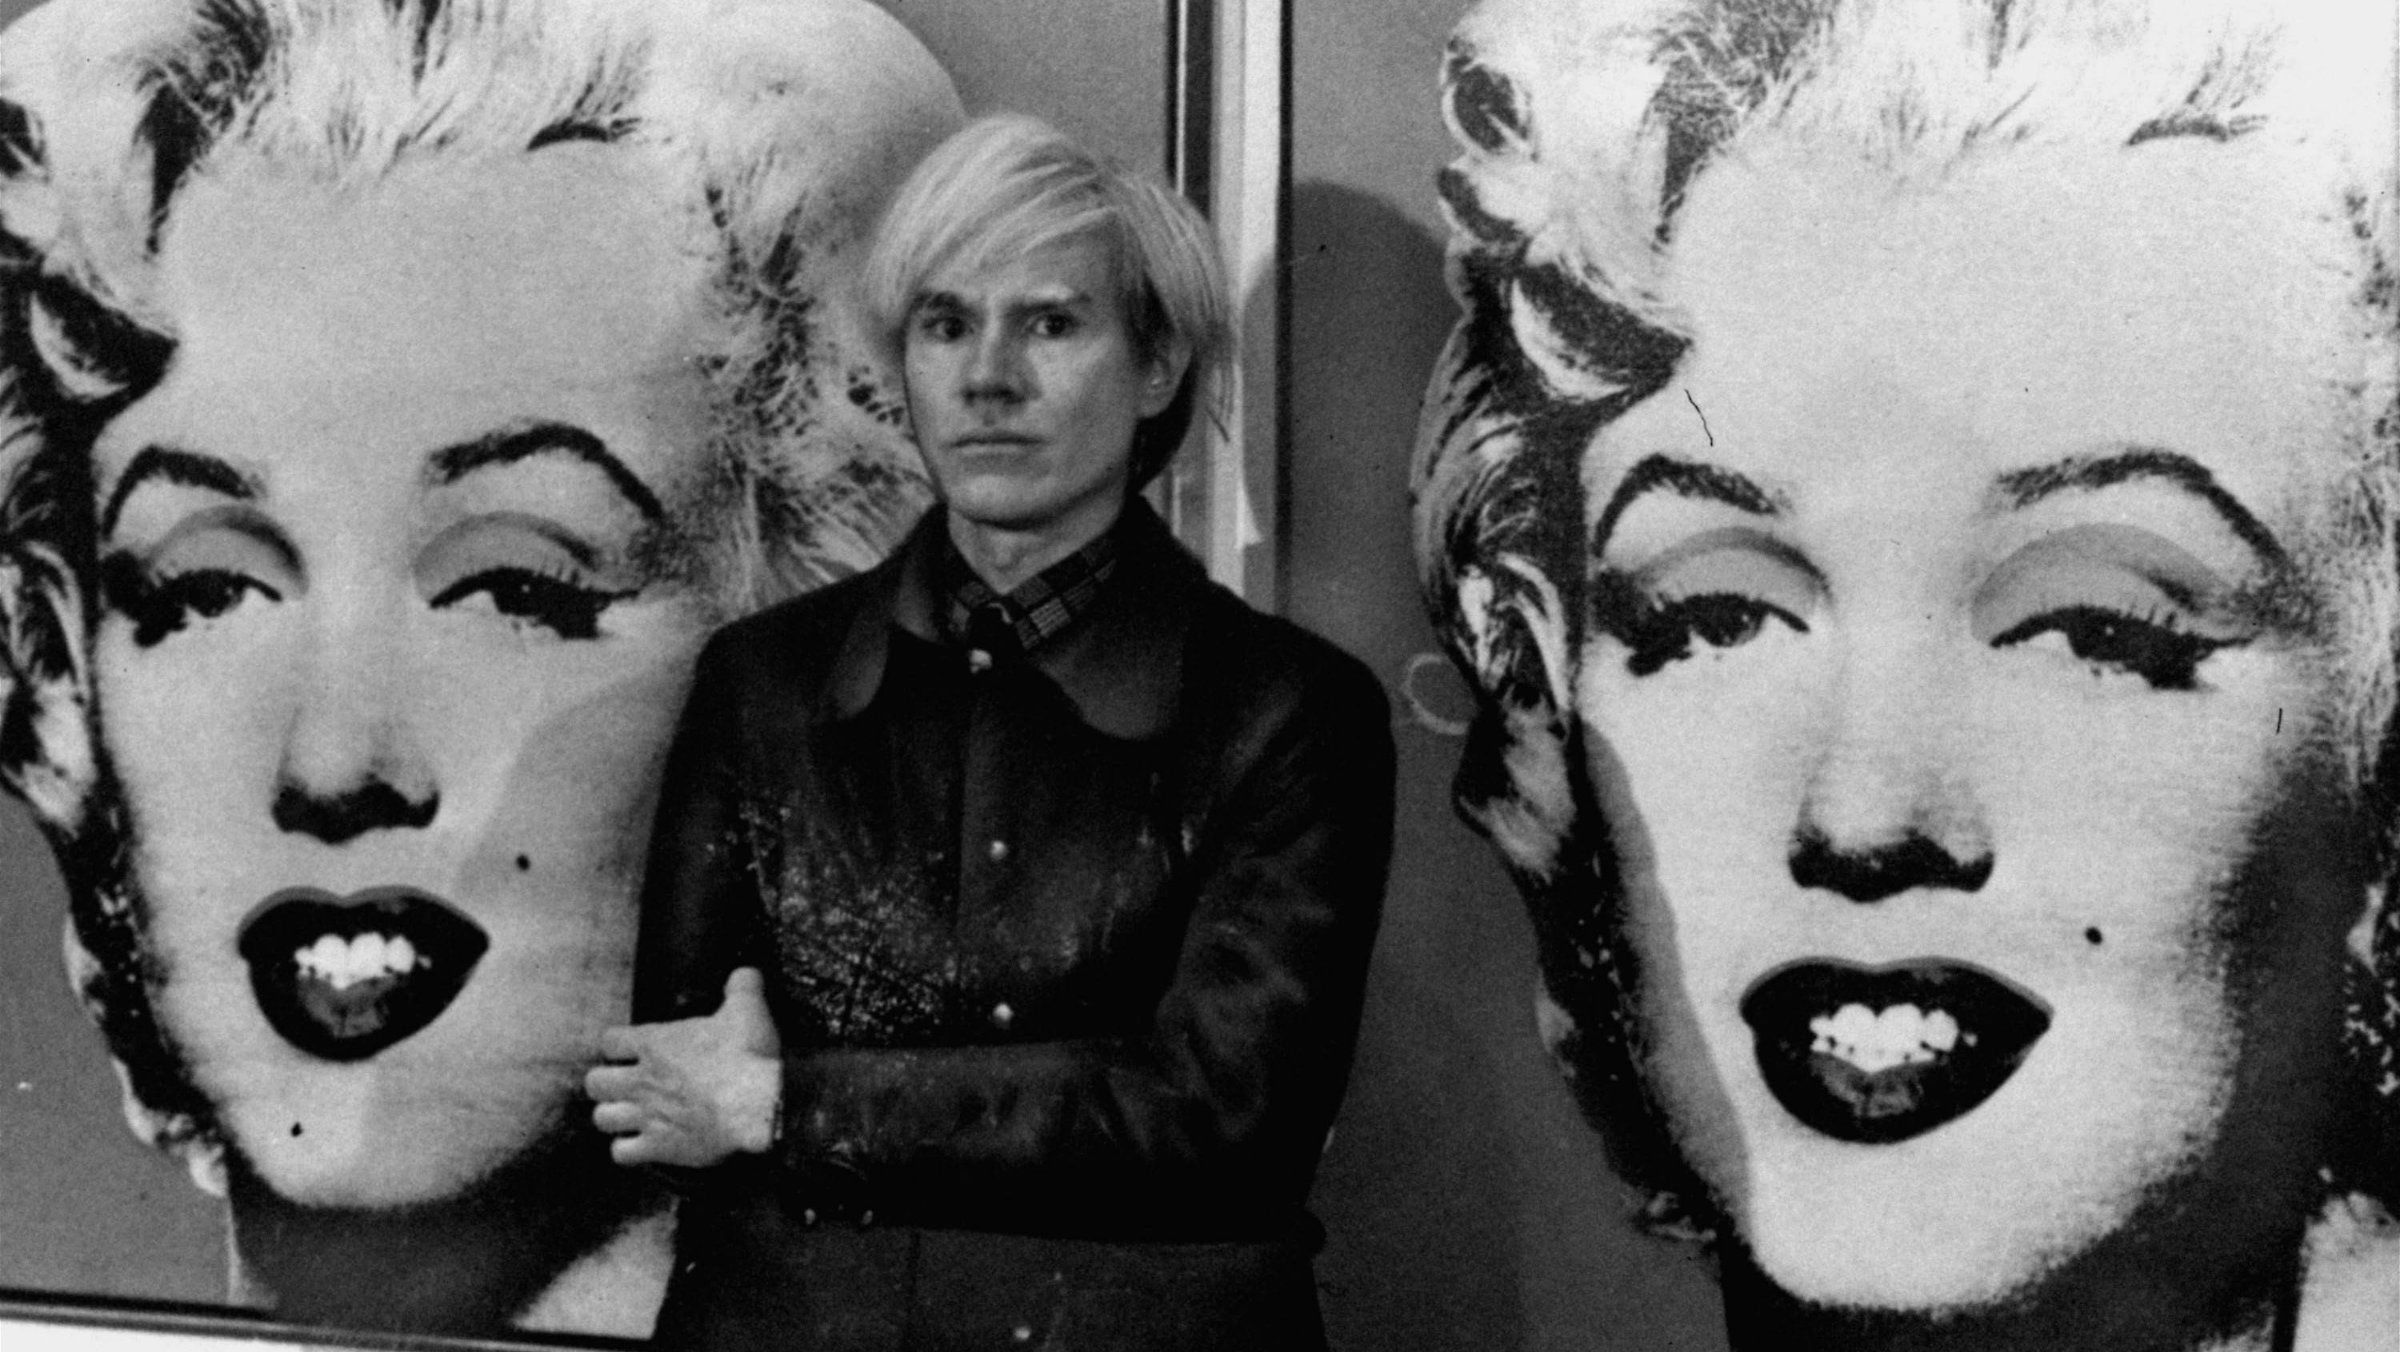 America's pop art painter and filmmaker, Andy Warhol, stands in front of his double portrait of the late Hollywood film star, Marilyn Monroe, at The Tate Gallery in London, February 15, 1971, at a press preview of his exhibition.